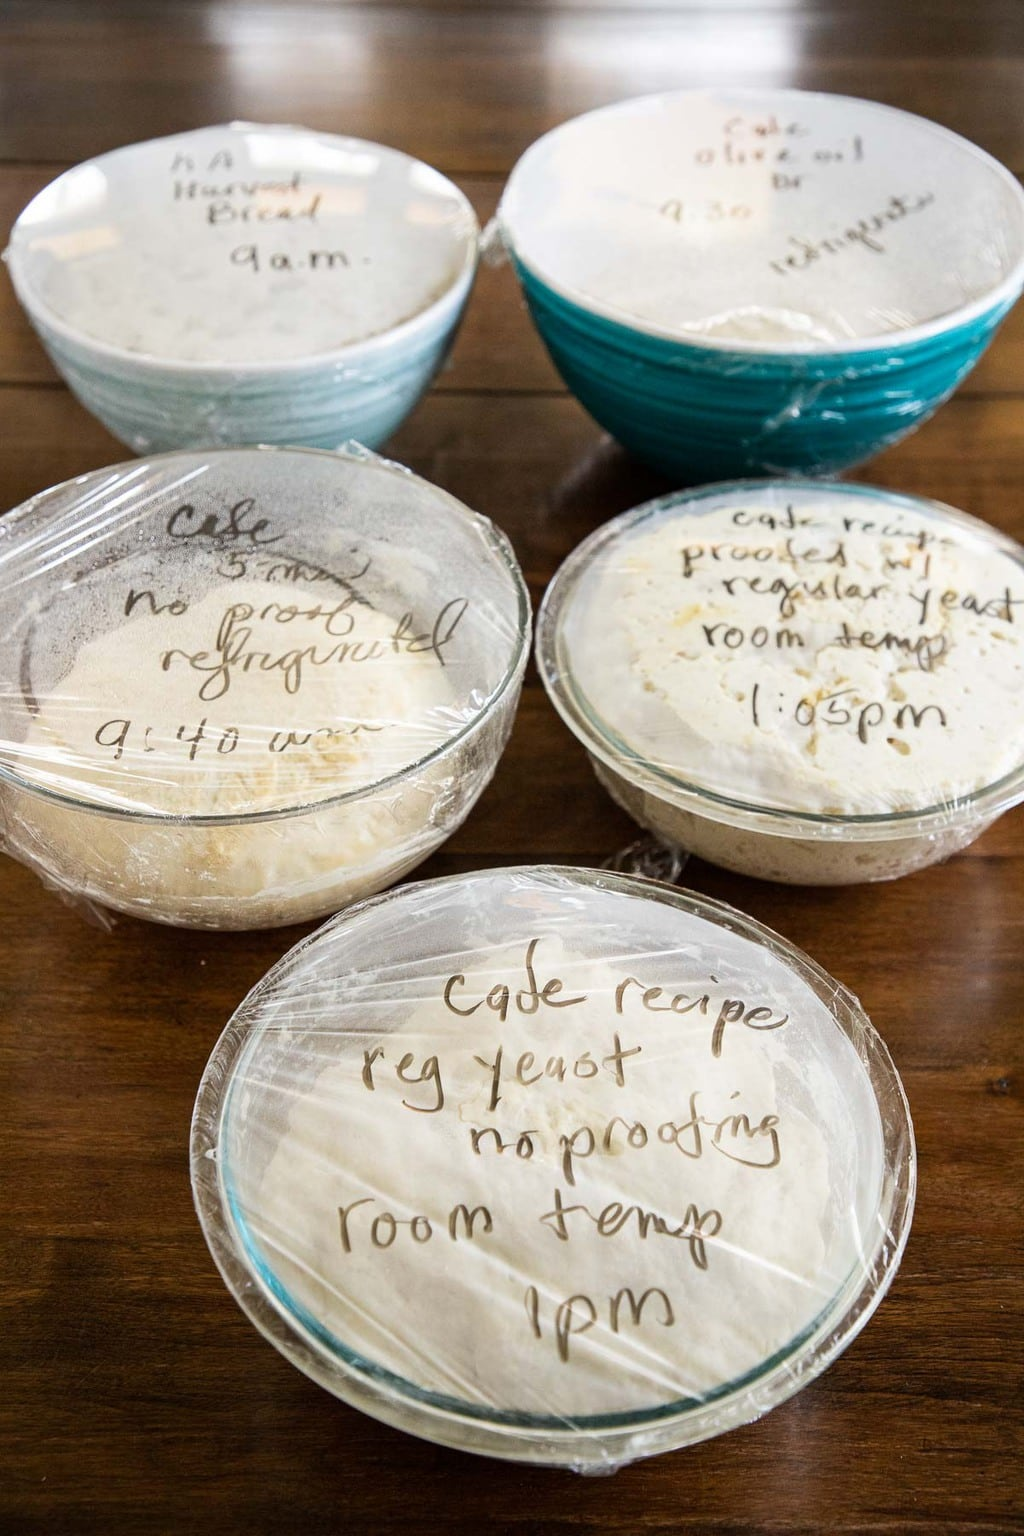 Vertical photo of various glass bowls filled with test dough for making No-Knead Seeded Oatmeal Bread.